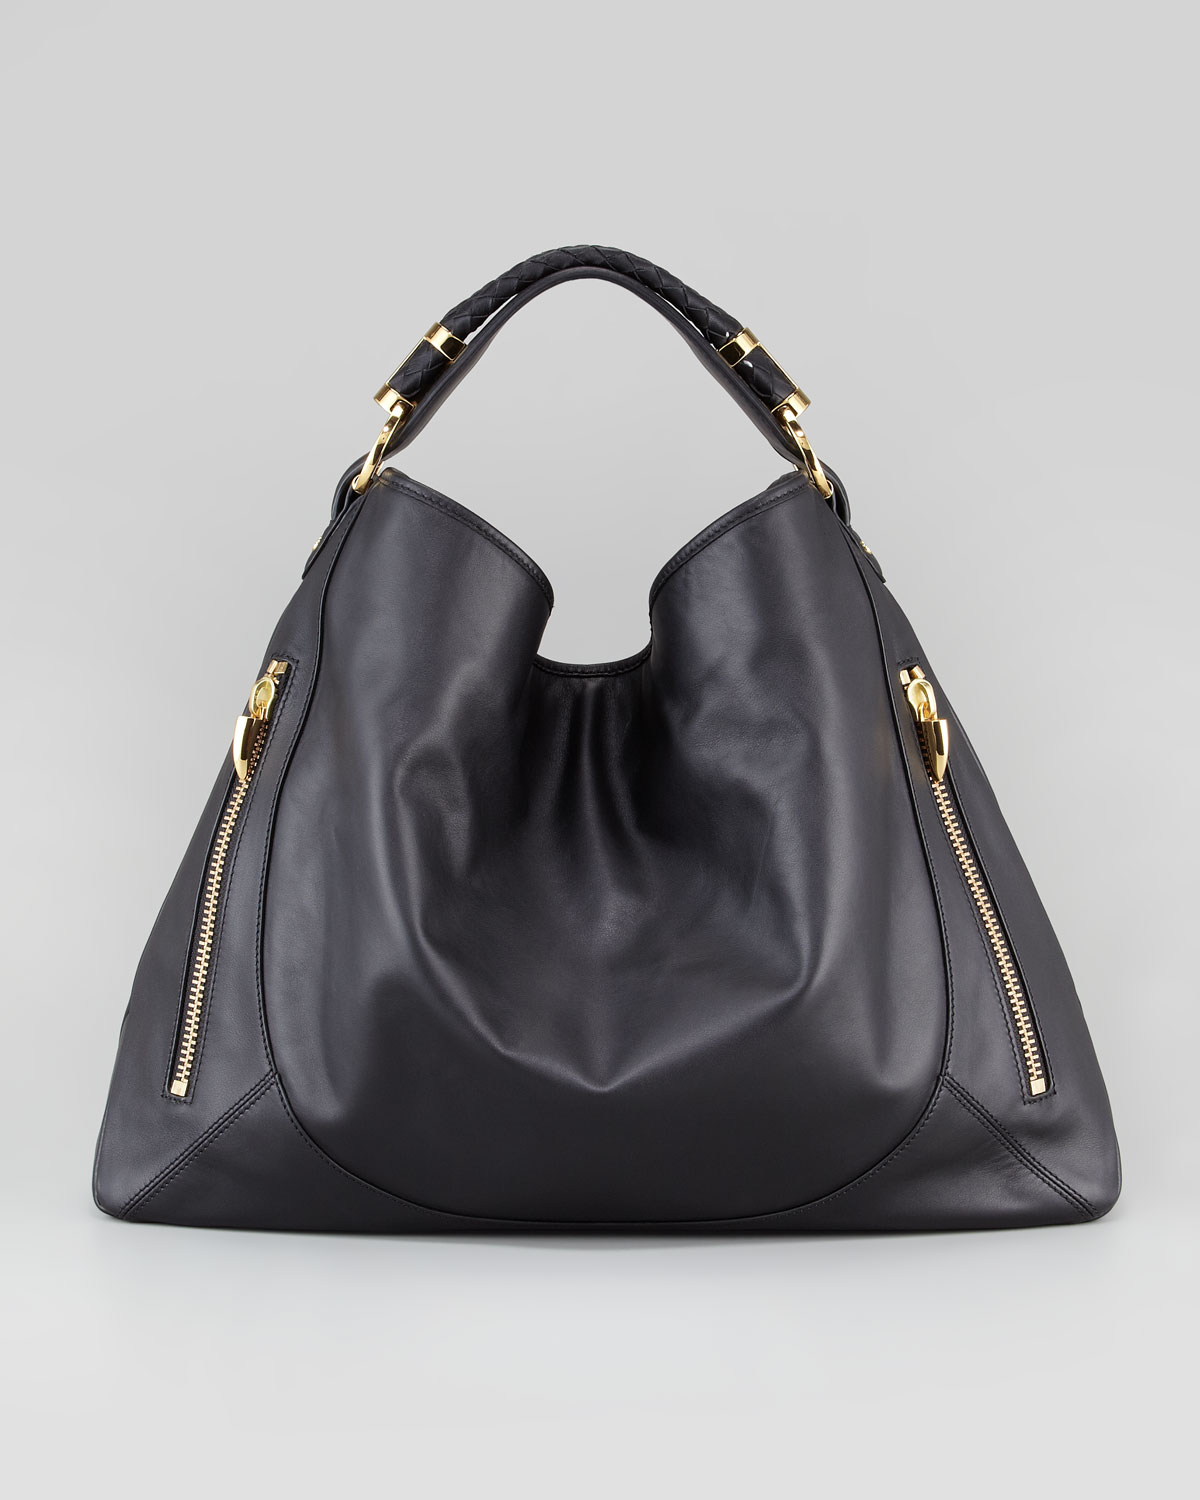 Rachel zoe Joni Leather Hobo Bag in Black | Lyst